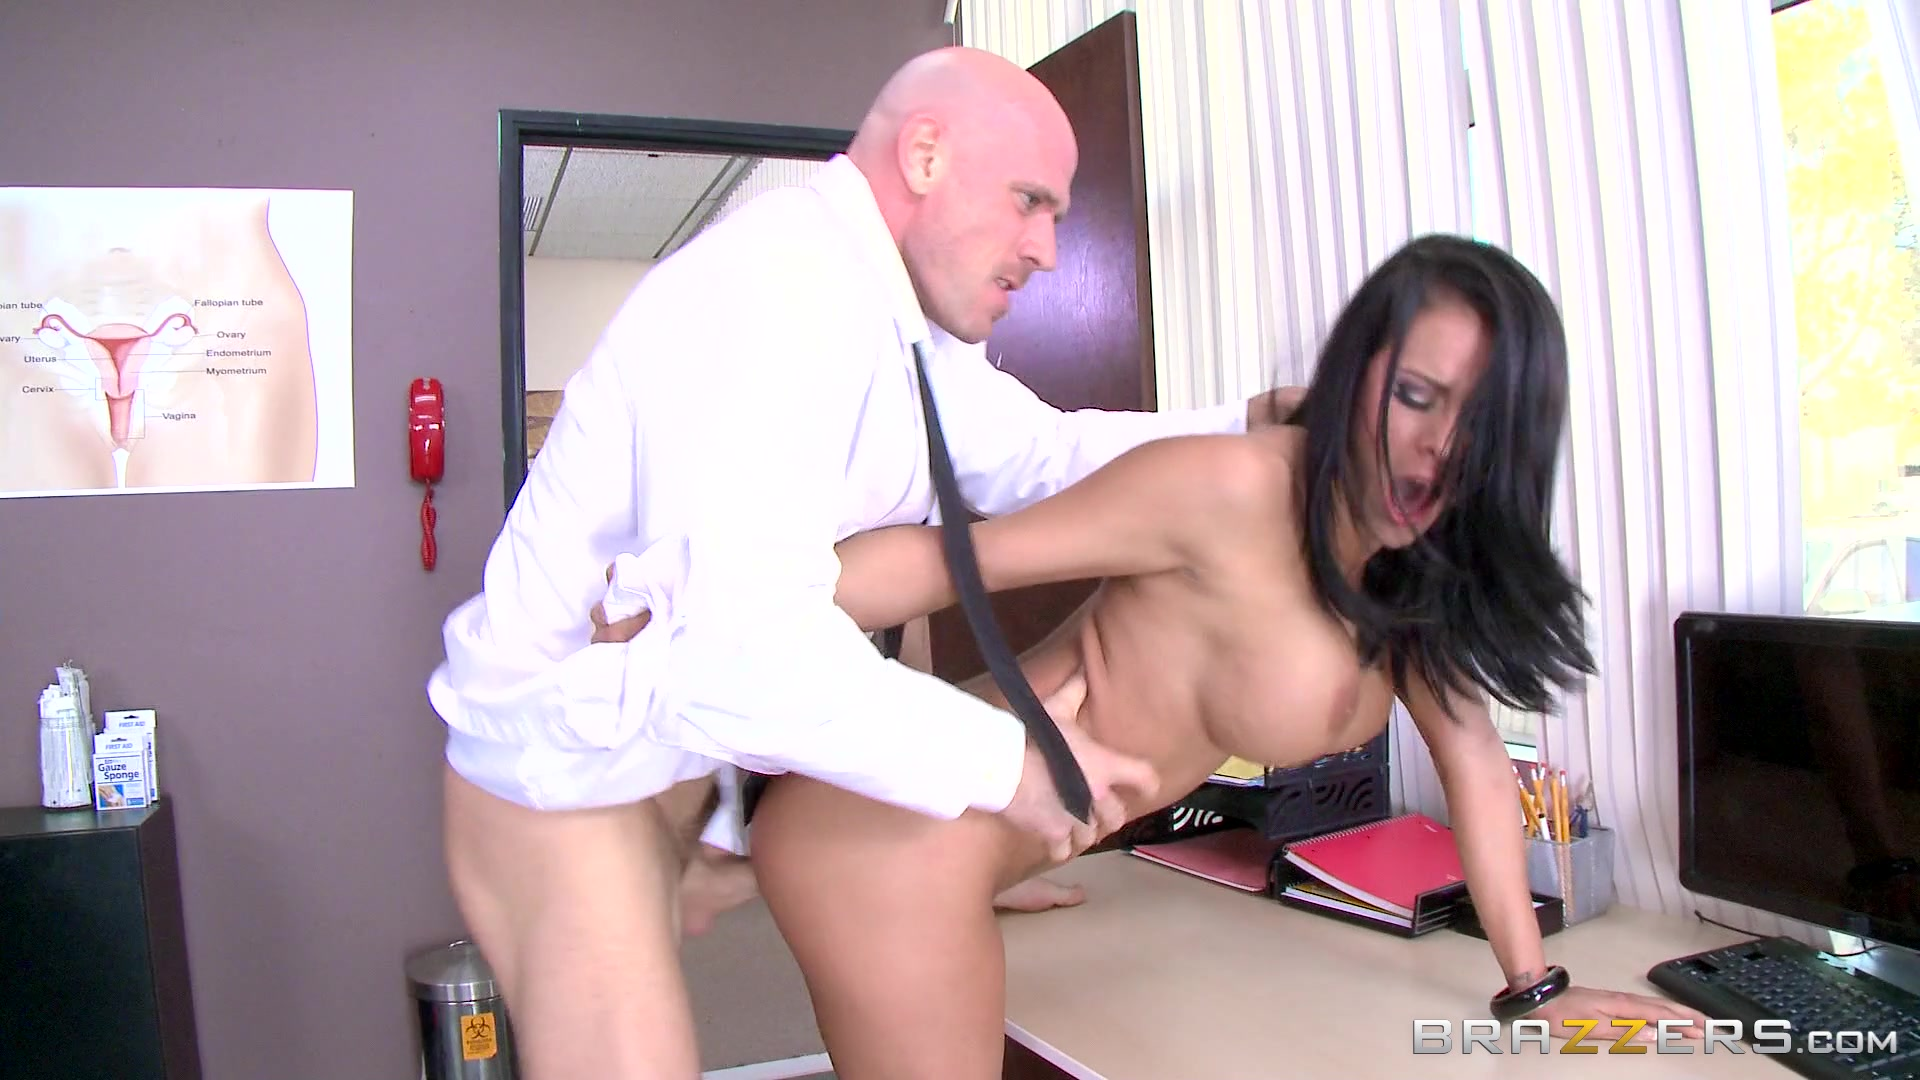 Nympho Nurses And Dirty Doctors 2016 Videos On Demand -5985